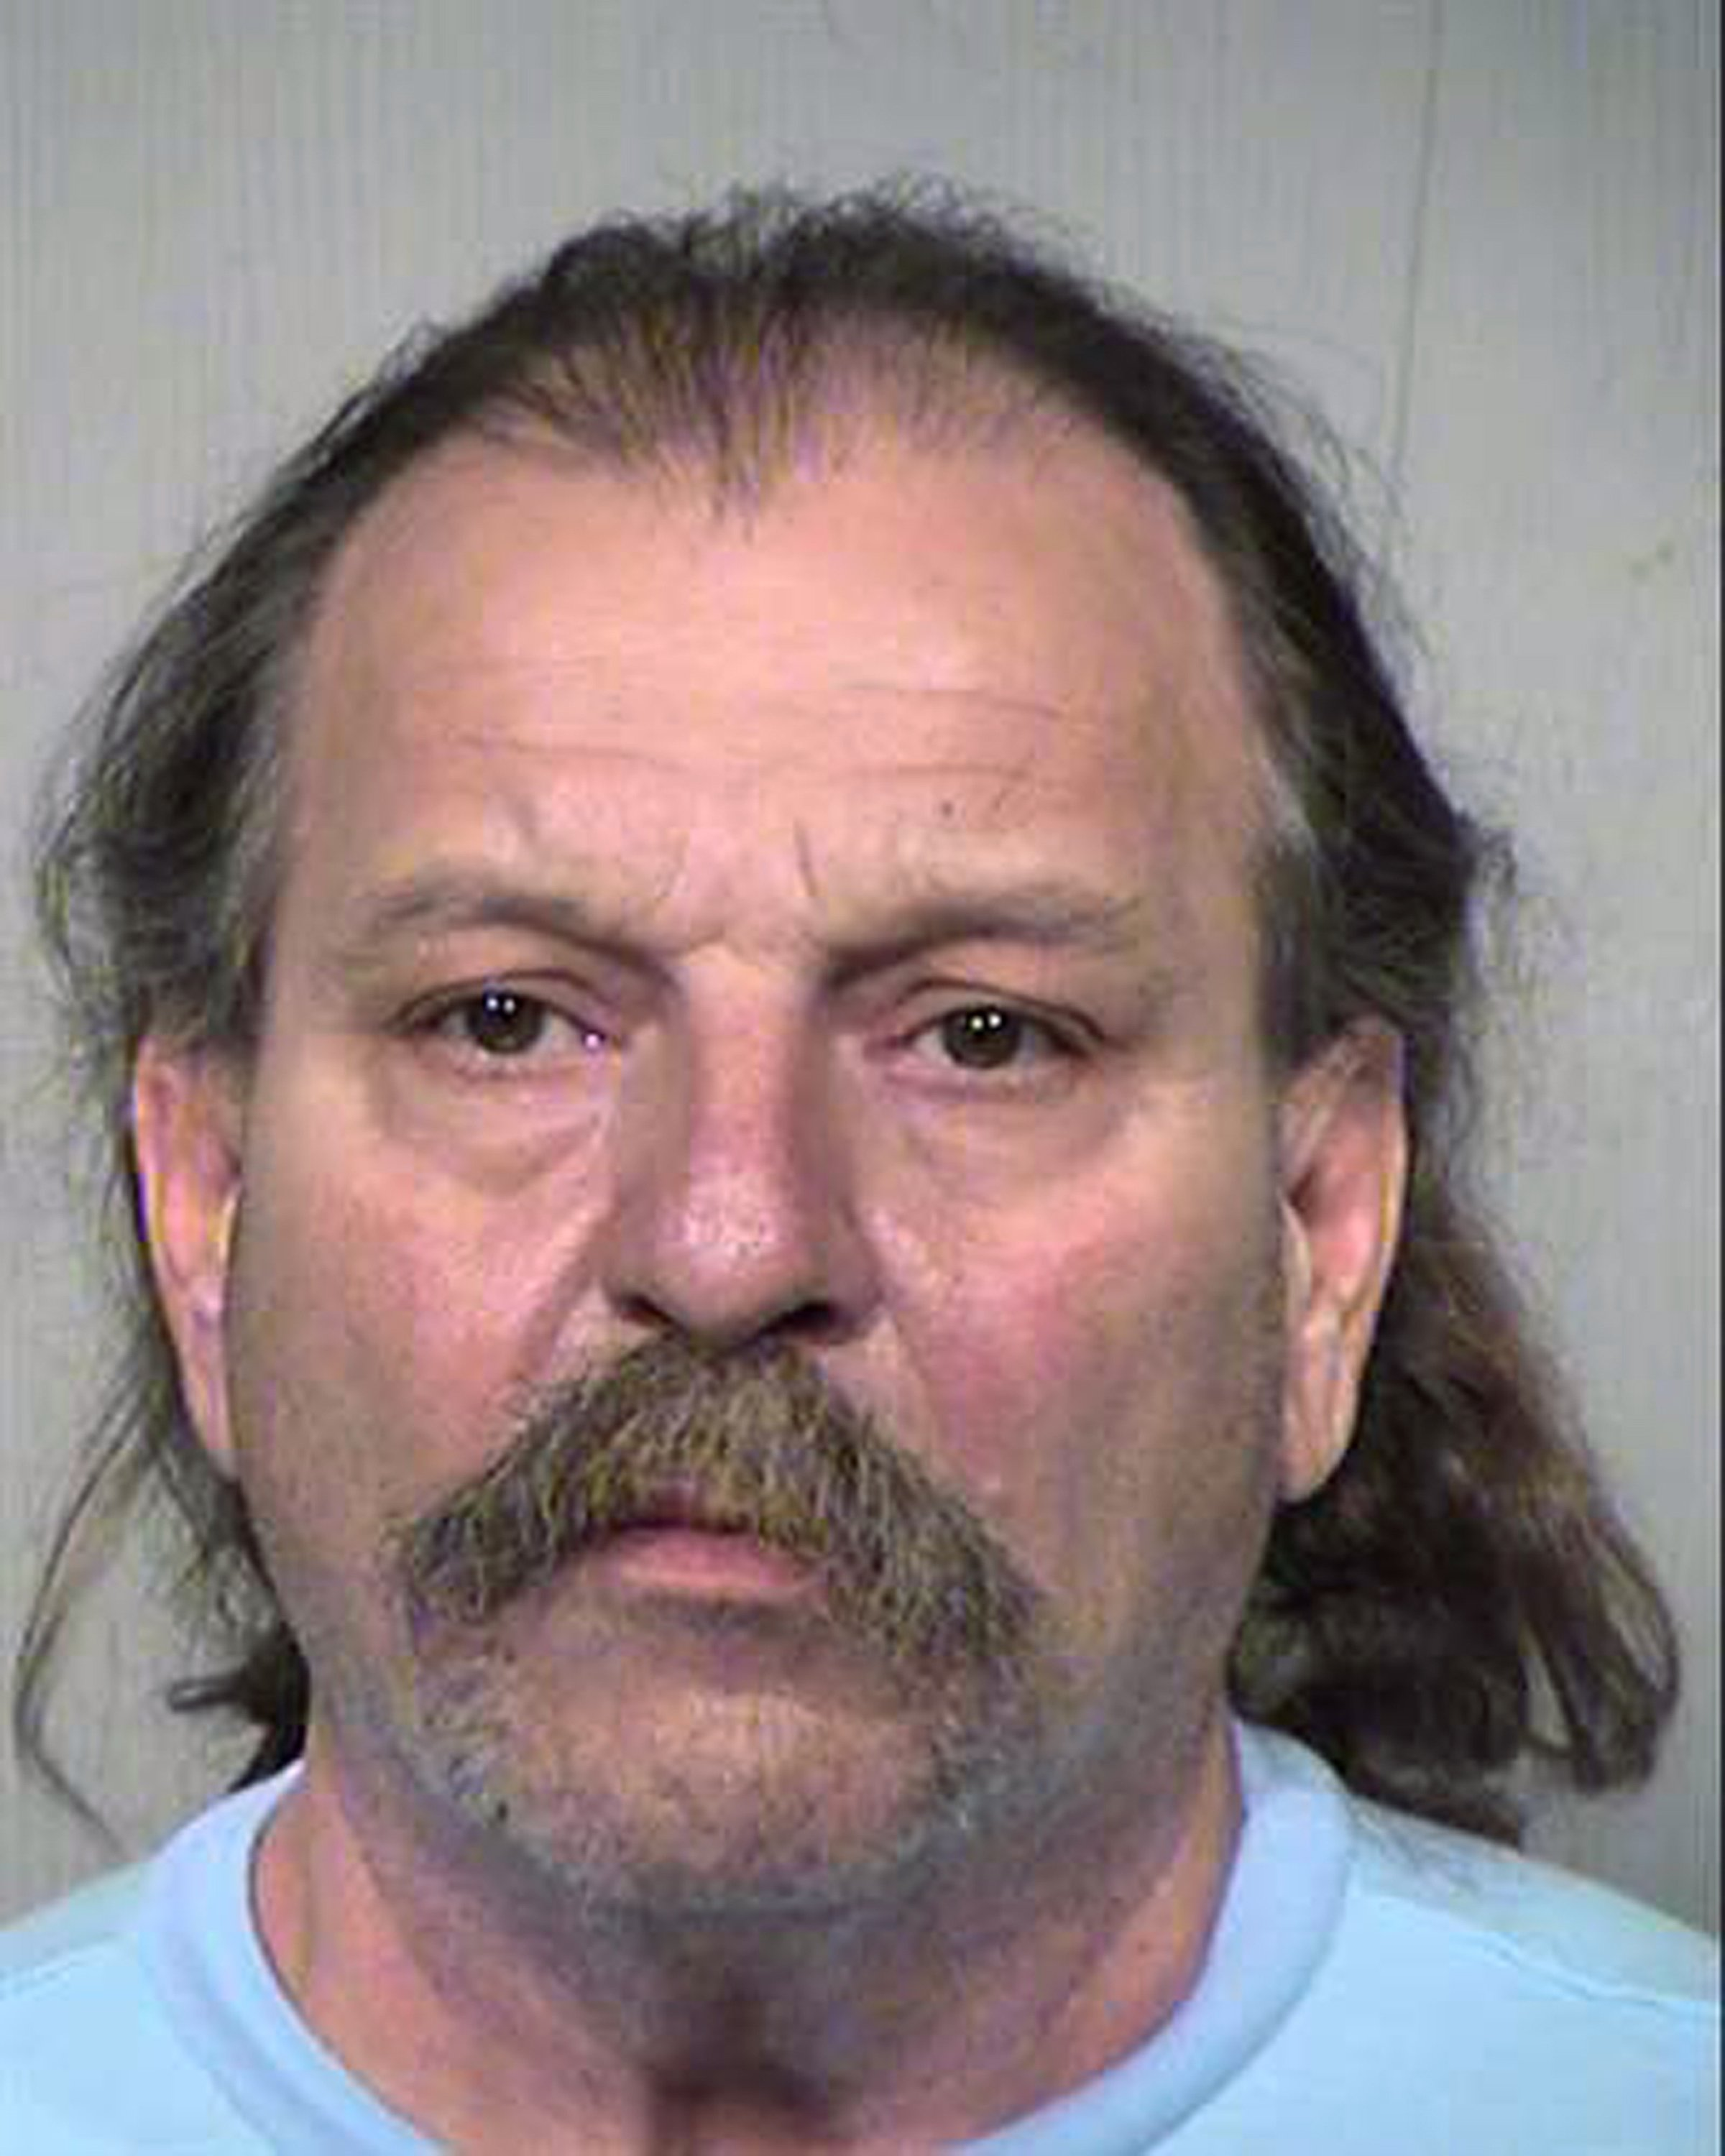 2nd man charged in 2014 ax-bludgeoning death in Arizona